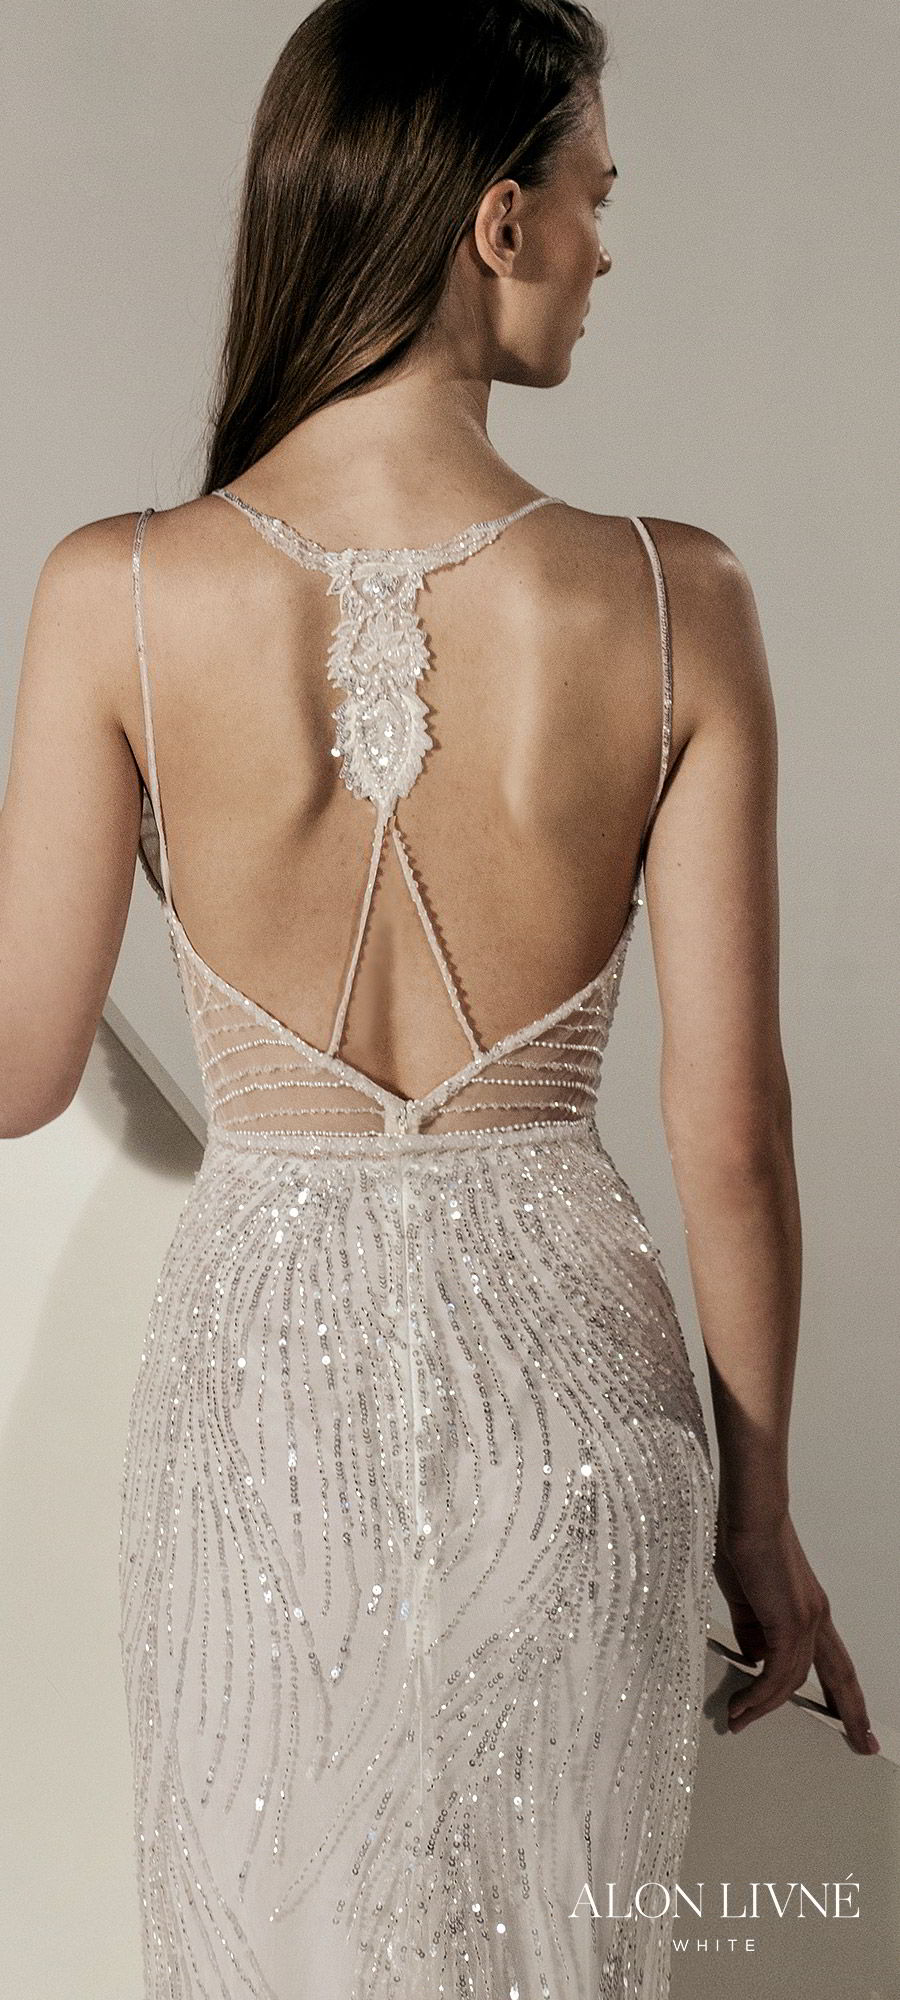 alon livne white spring 2020 bridal sleeveless thin straps fully embellished sheath wedding dress (gia) open back glamorous elegant zbv